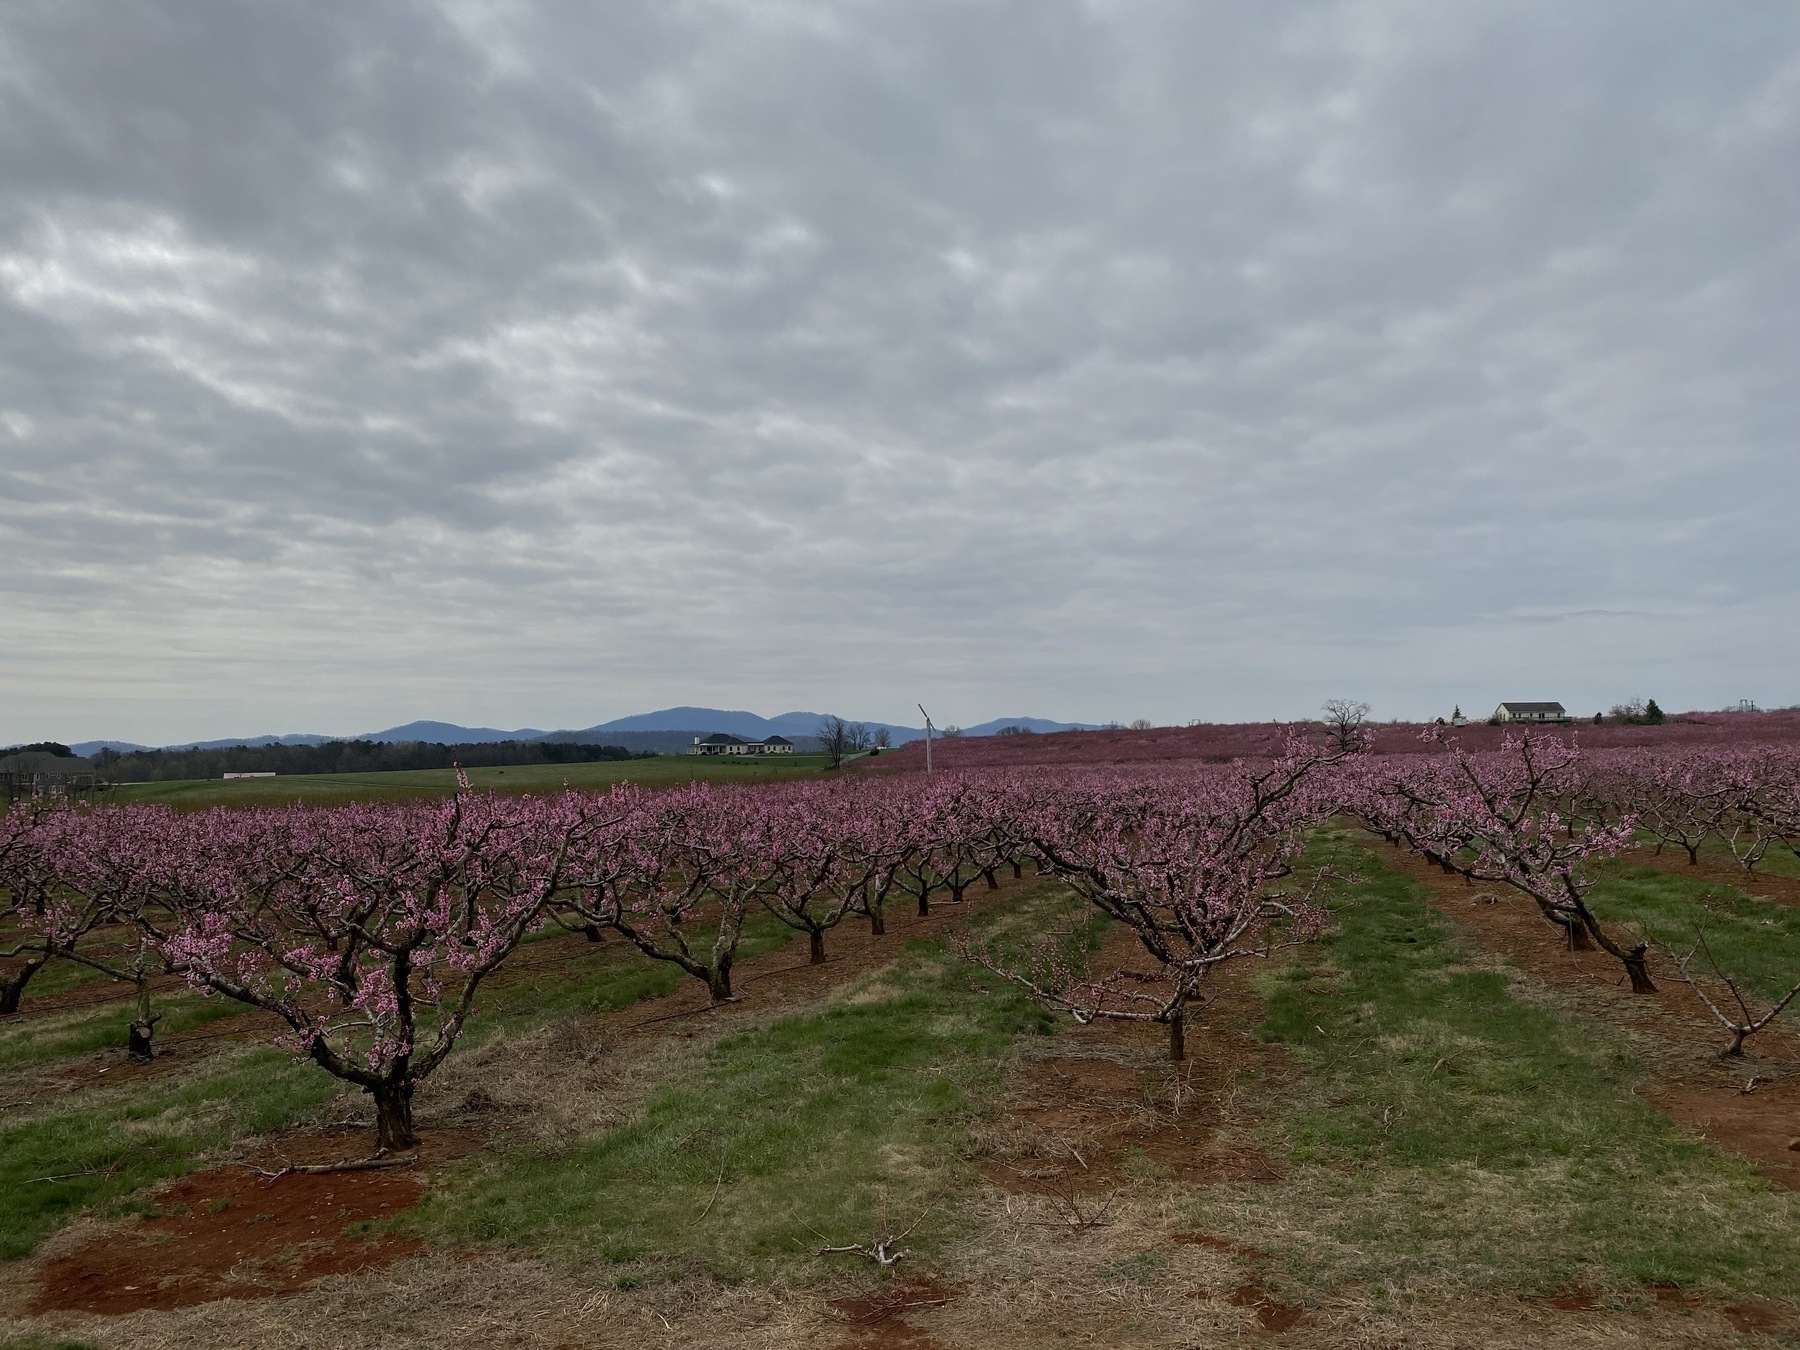 an orchard of blooming peach trees with the mountains in the background beneath a cloudy sky